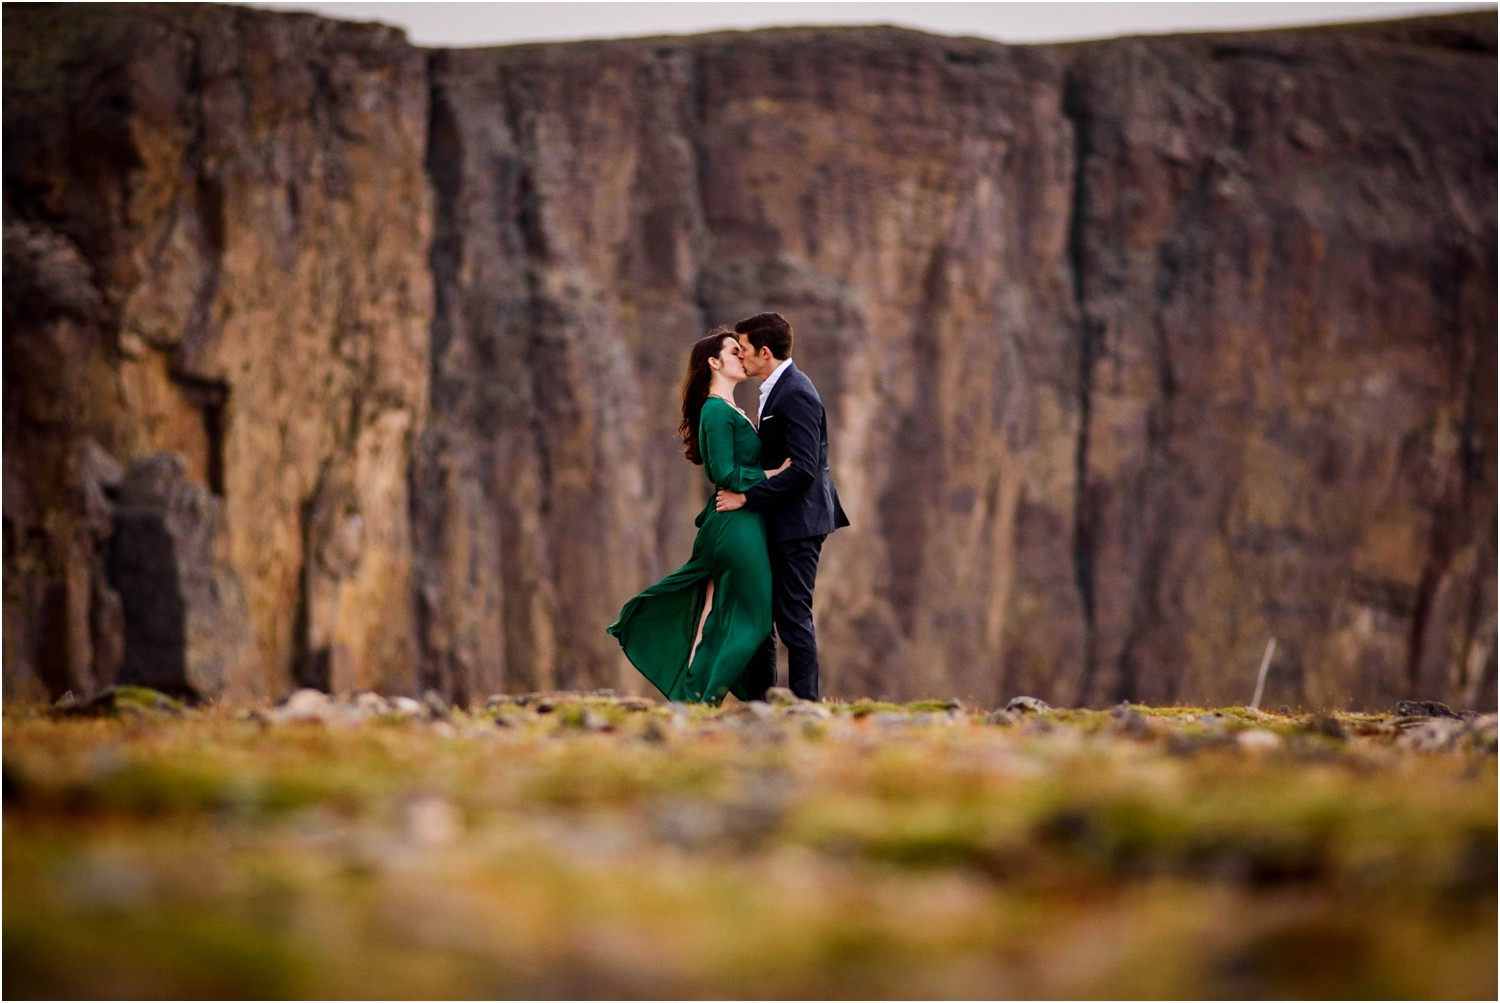 Rocky-mountain-national-Park-engagement-photography_0025.jpg